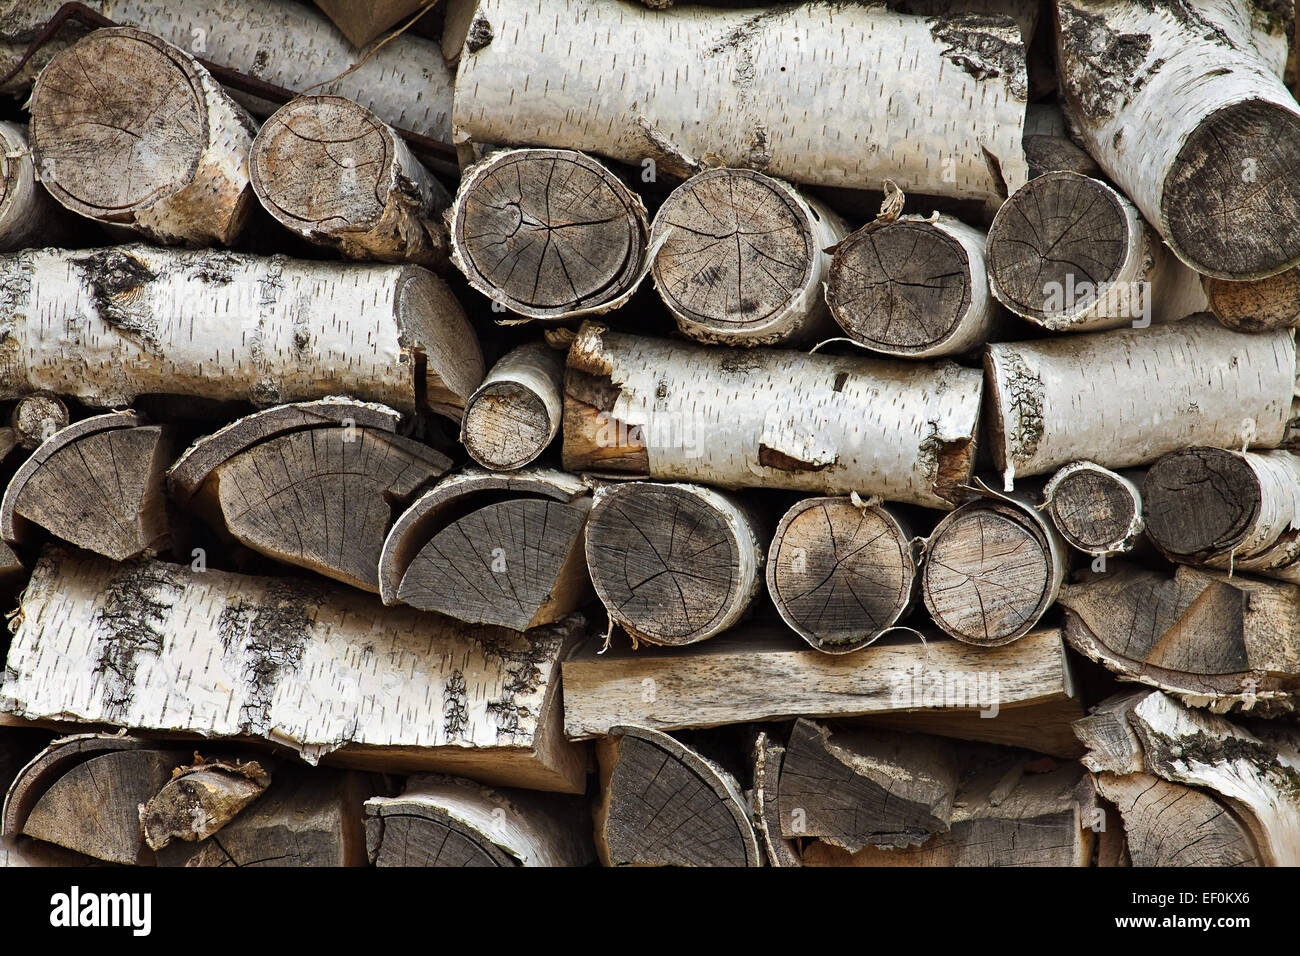 A stack of birch wood. - Stock Image